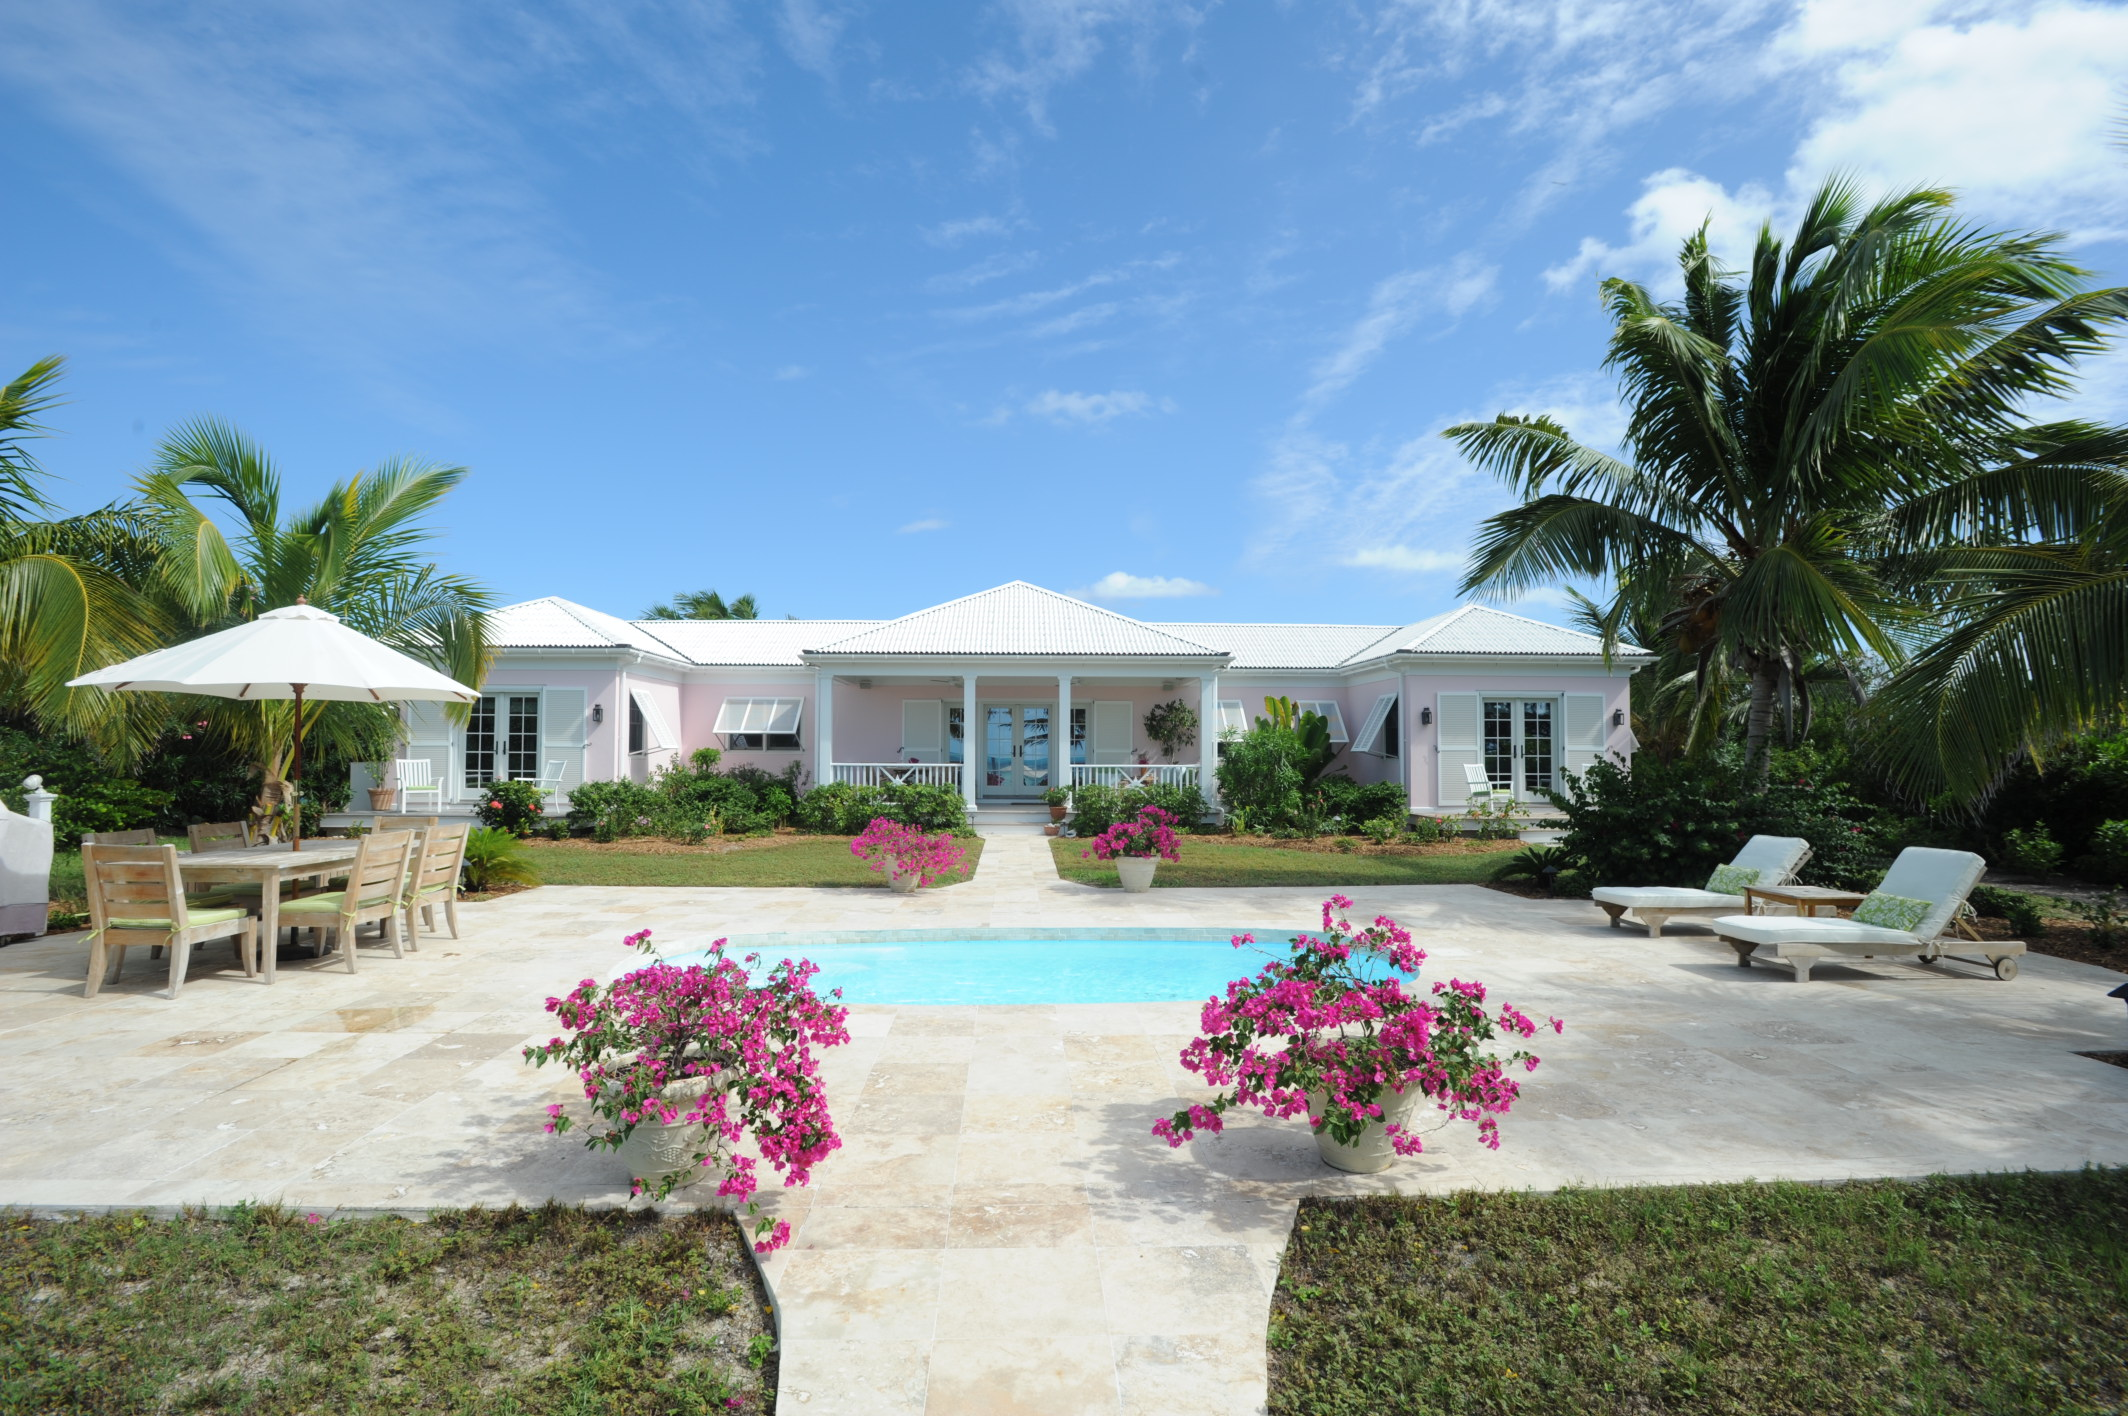 Single Family Home for Sale at On A Whymm, Long Island Sunset Beach Wemyss Settlement, Long Island . Bahamas